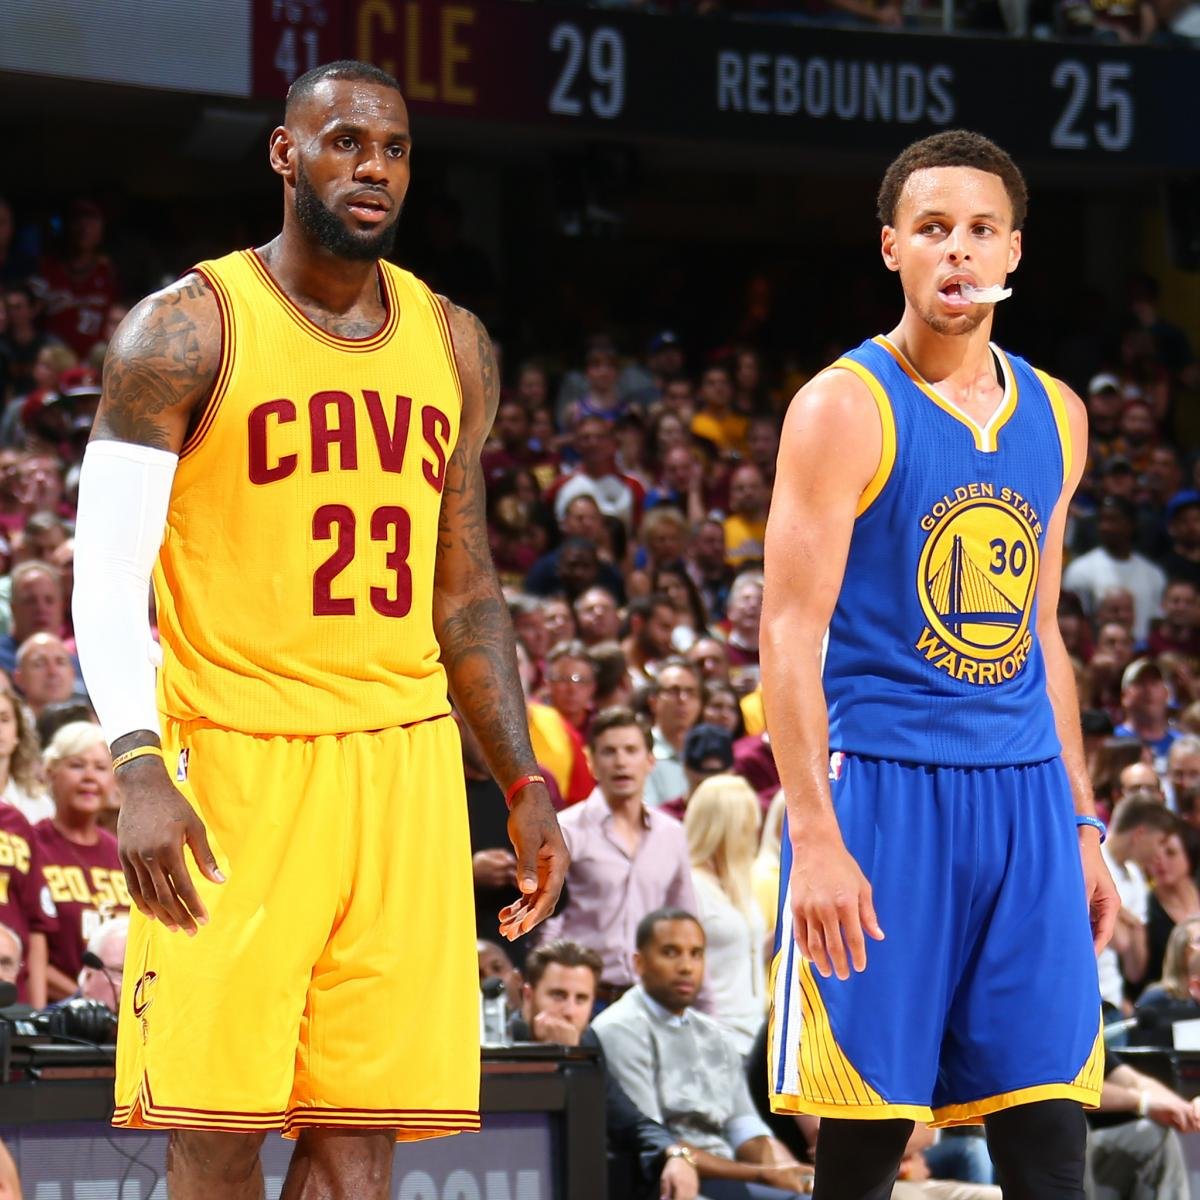 Fa 2014 08 sports wagering guidelines that you cana t afford to overlook - How Your Nba Team Can Totally Exceed Expectations In 2015 16 Bleacher Report